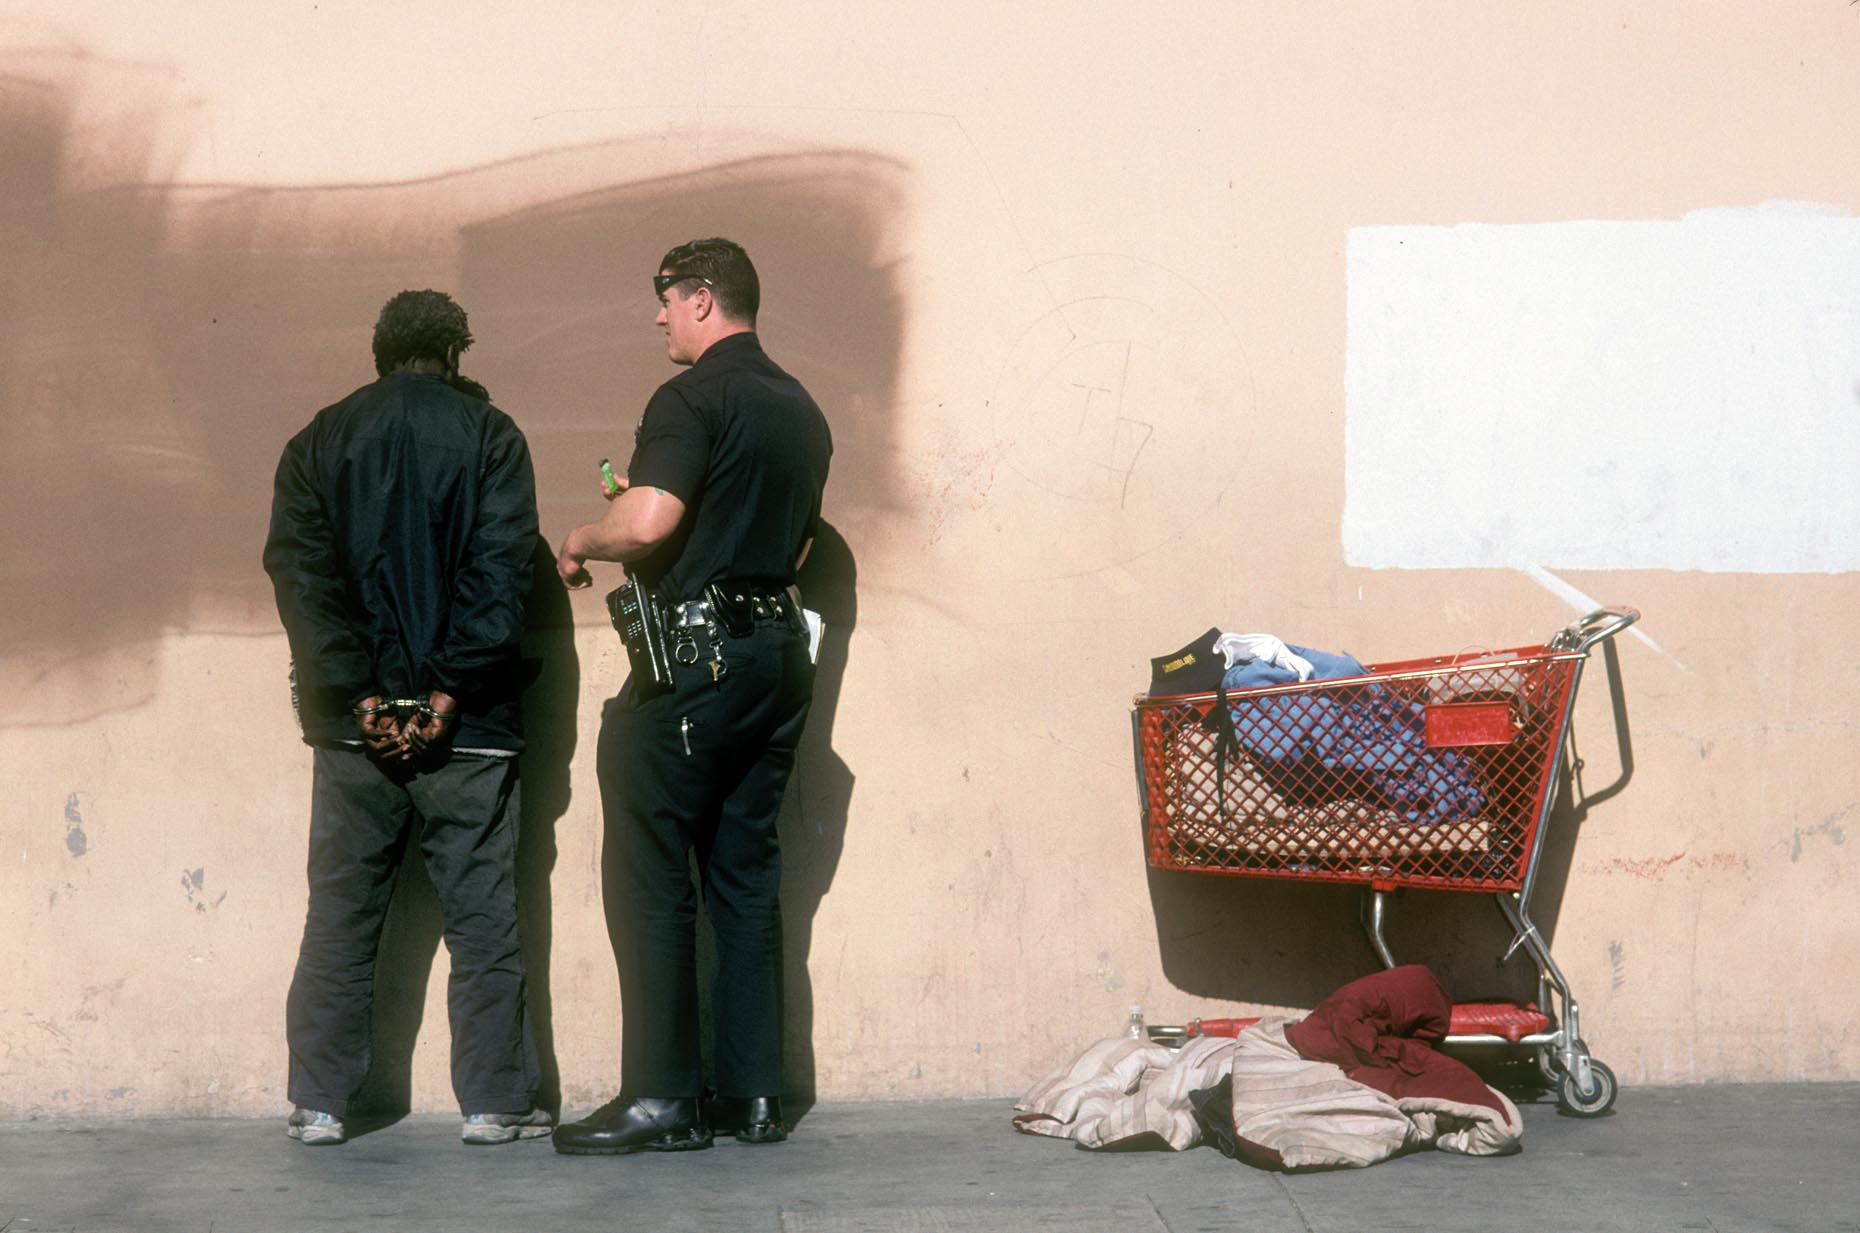 29_441 Towne Ave-DUP2., Skid Row, 2007.jpg